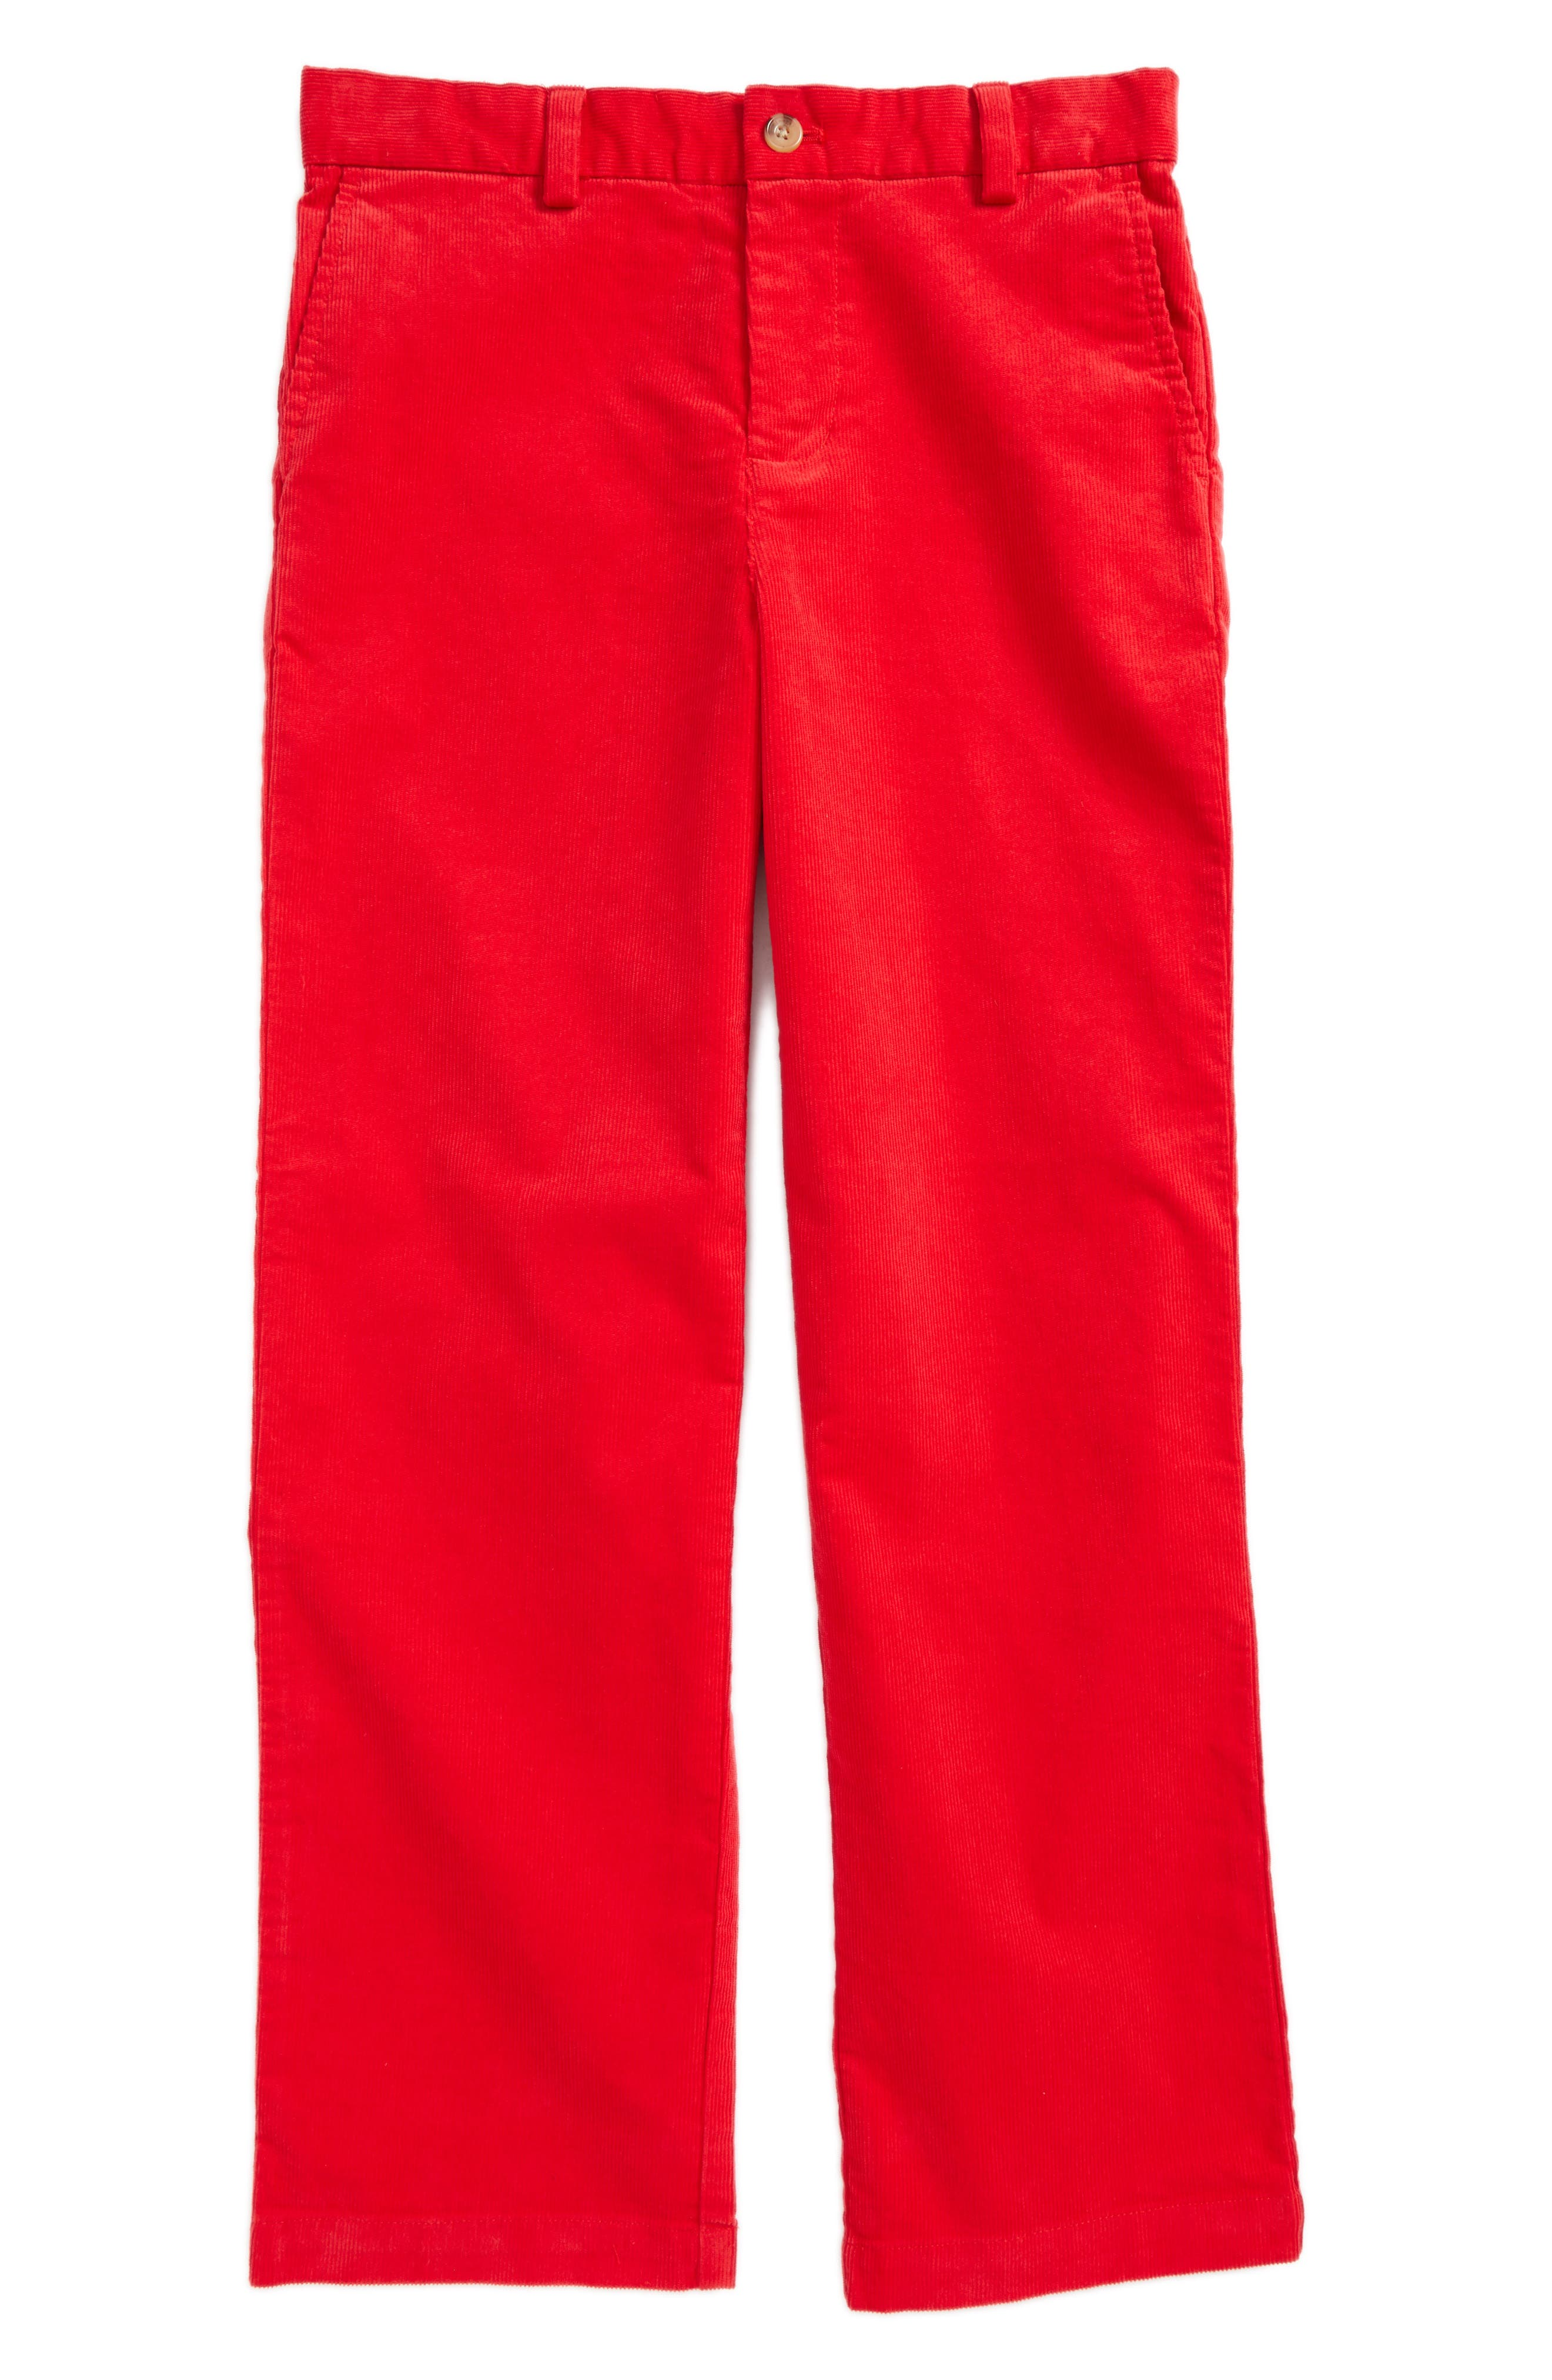 Breaker Corduroy Pants,                             Main thumbnail 1, color,                             Lighthouse Red